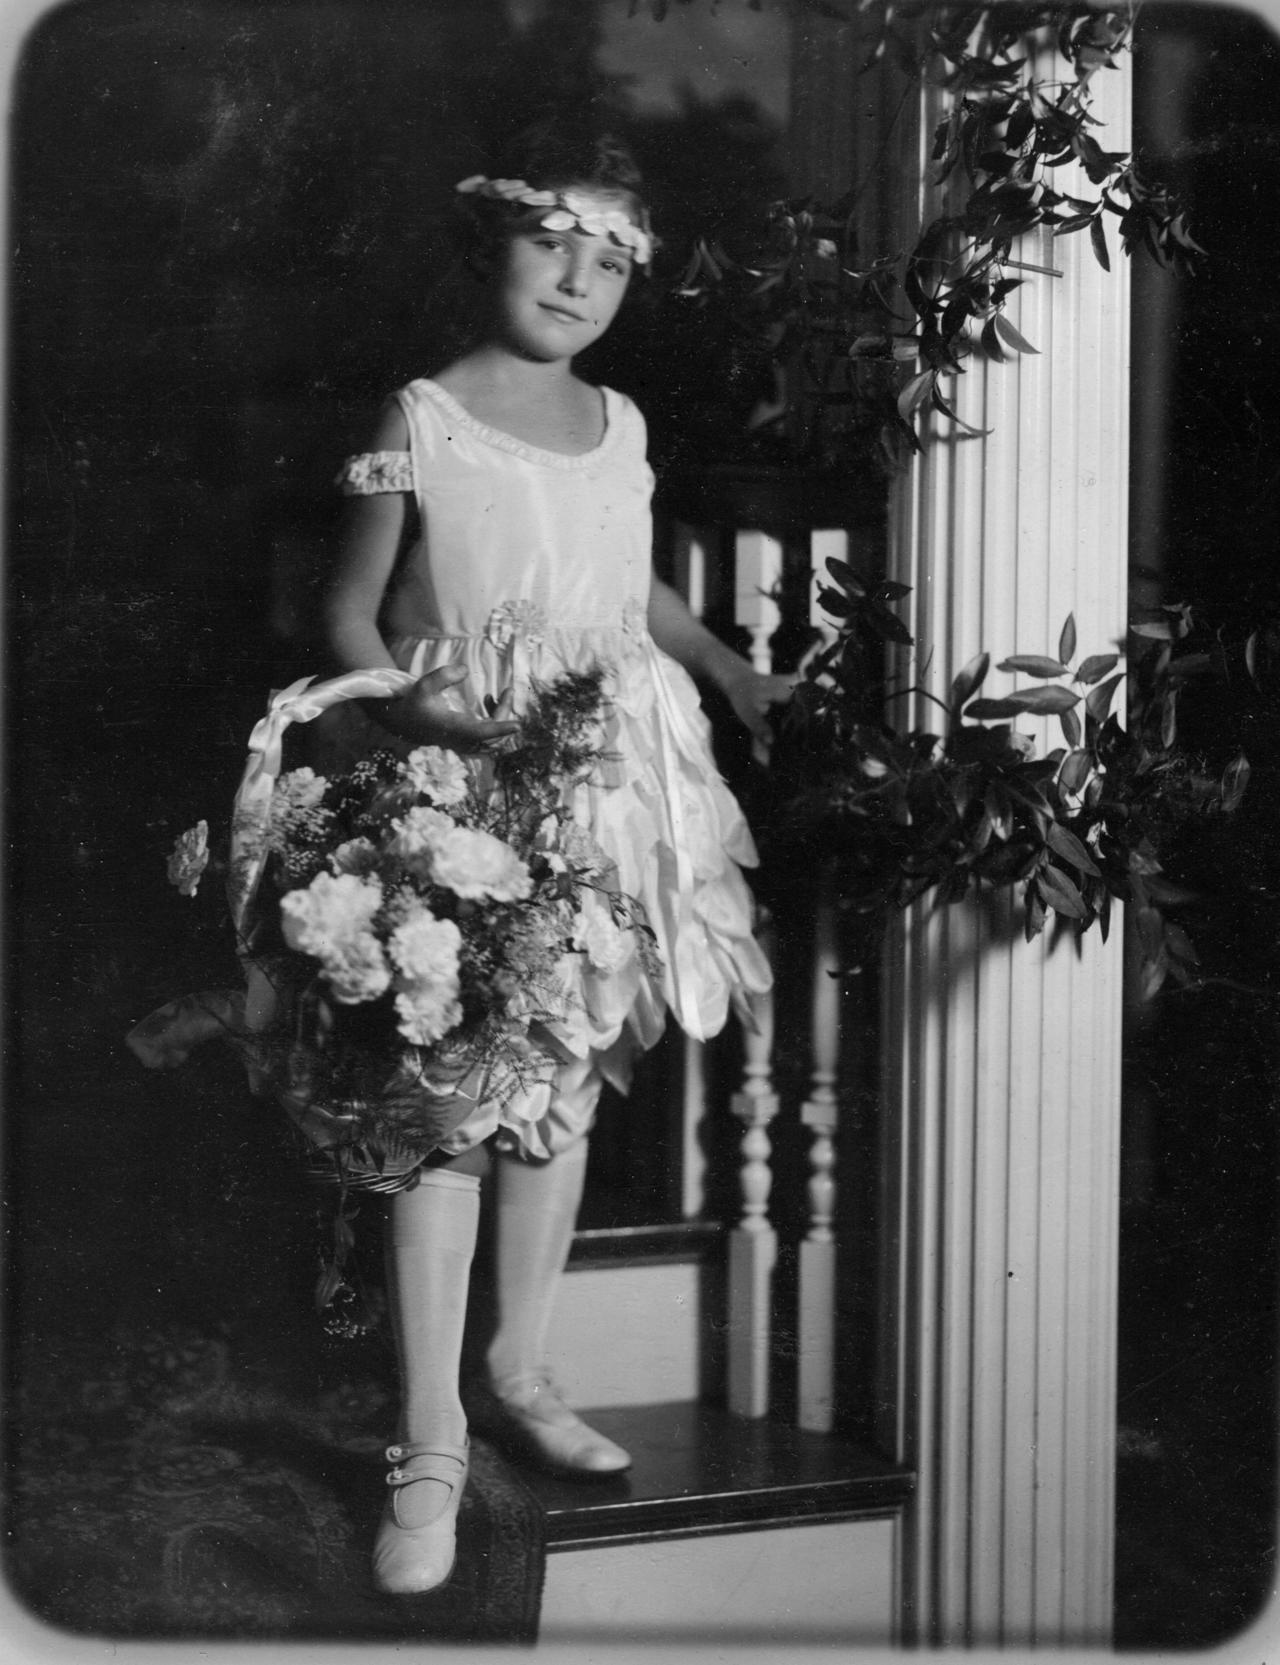 Edna Grace as a flower girl